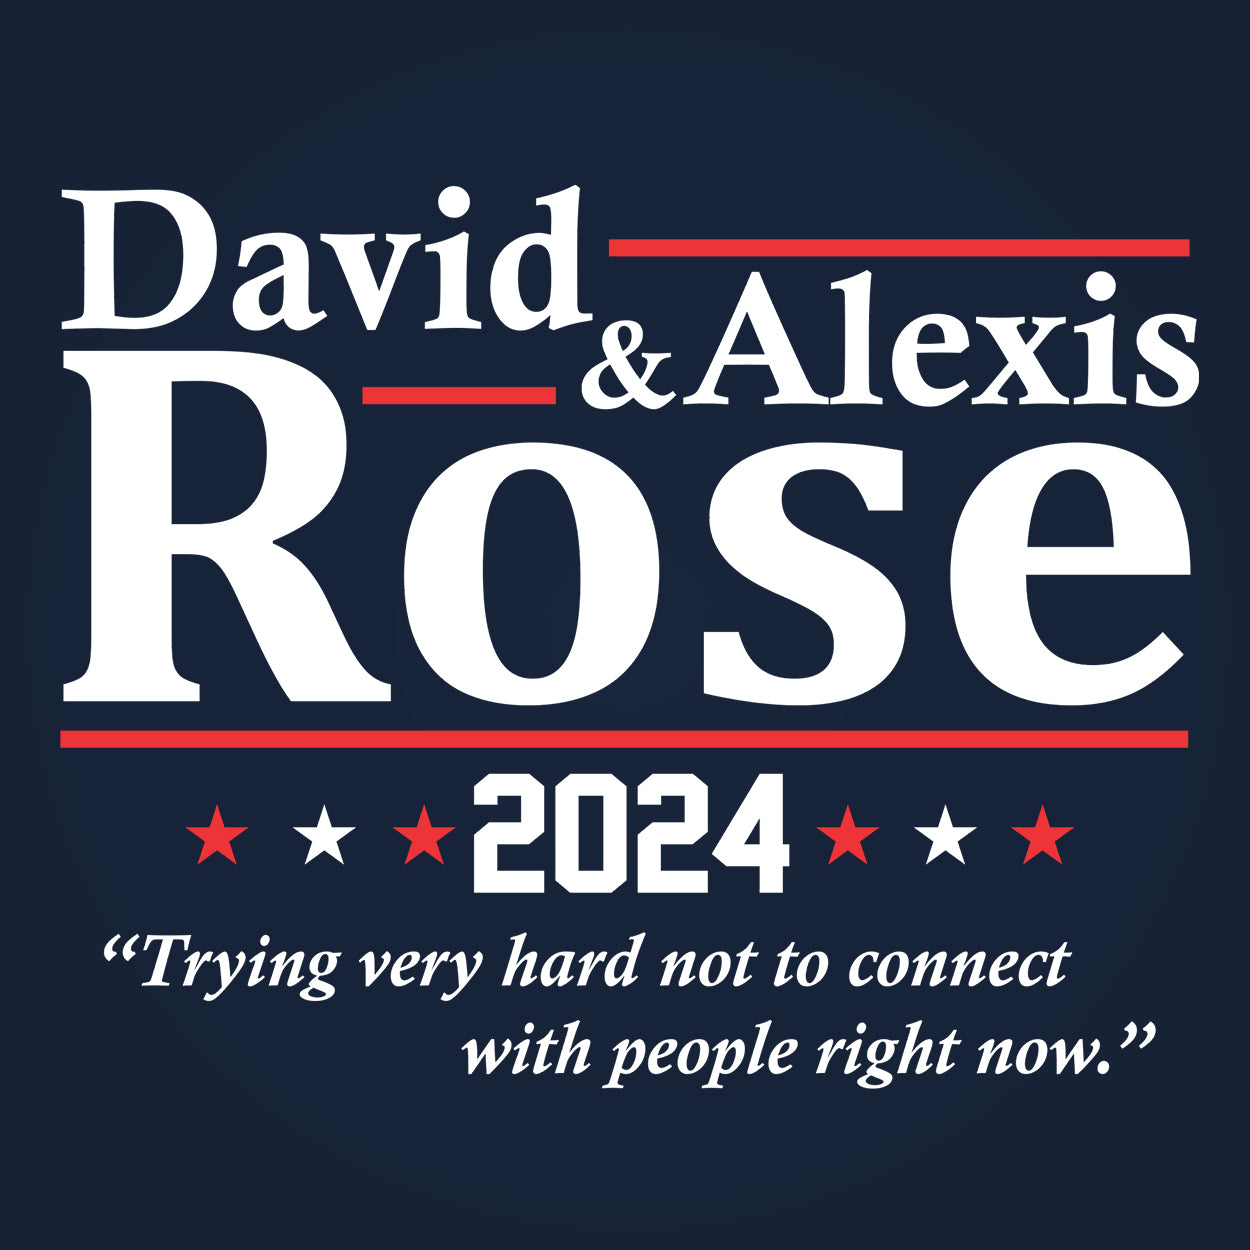 David & Alexis Rose 2024 Election